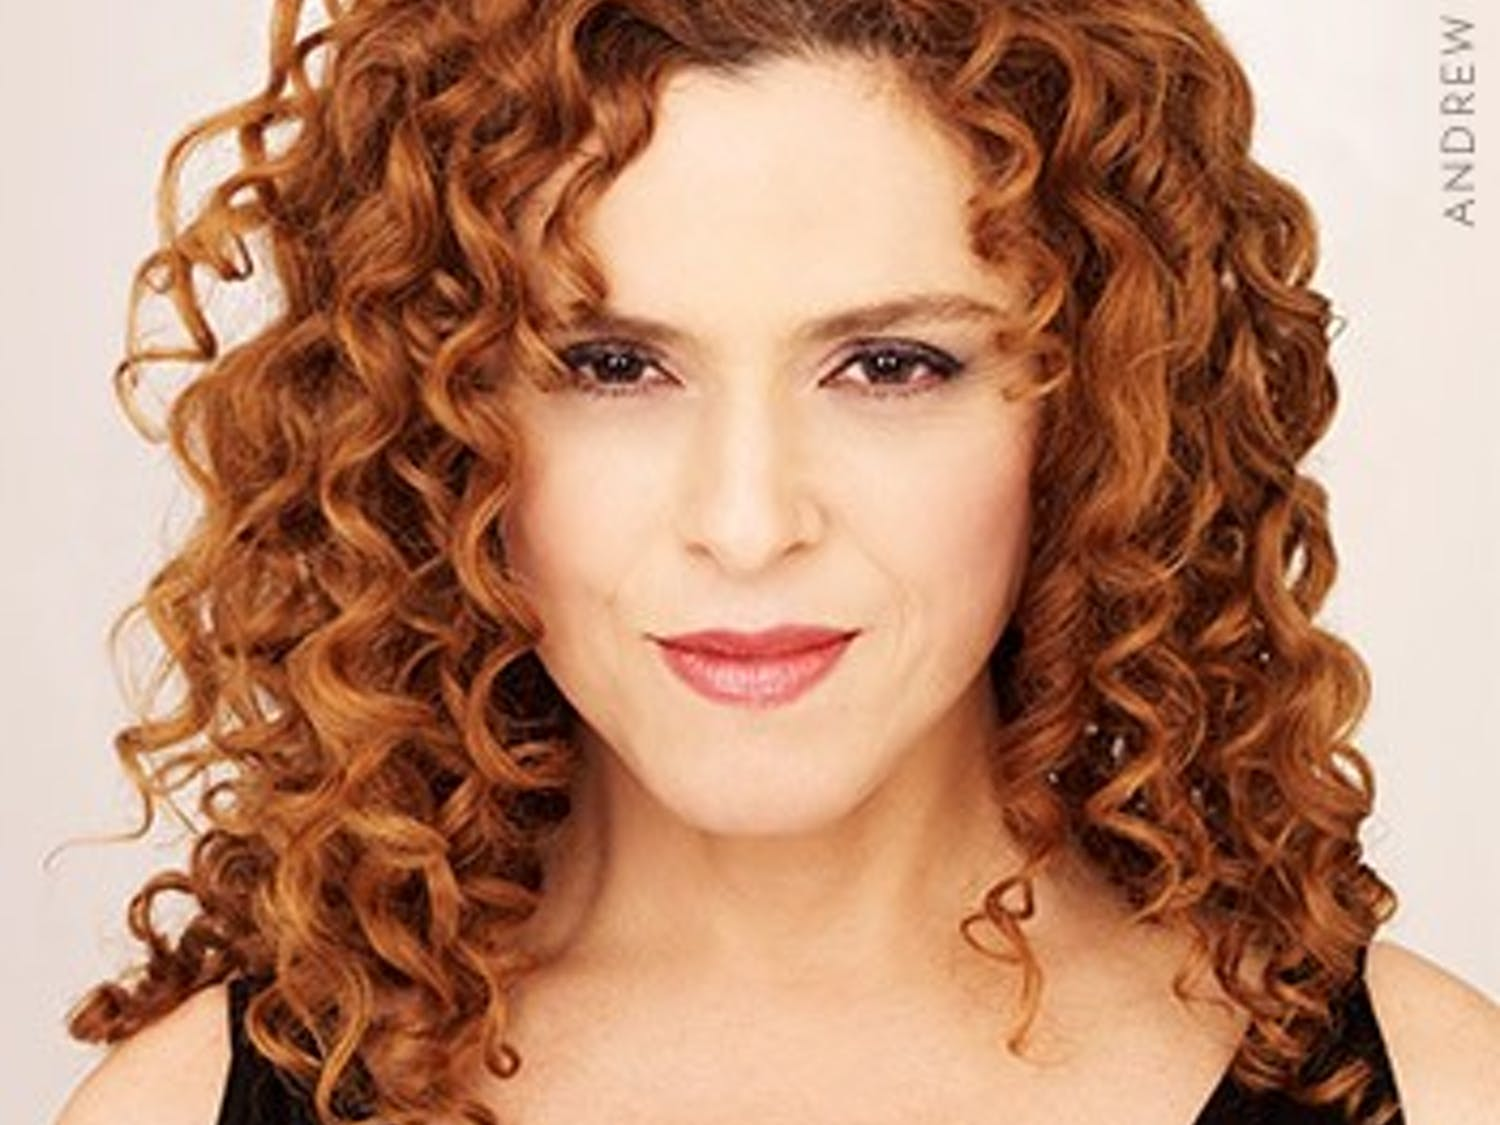 Tony® Award-winning actress Bernadette Peters comes to Madison to dazzle the audience with some of her hit performances on stage and television.